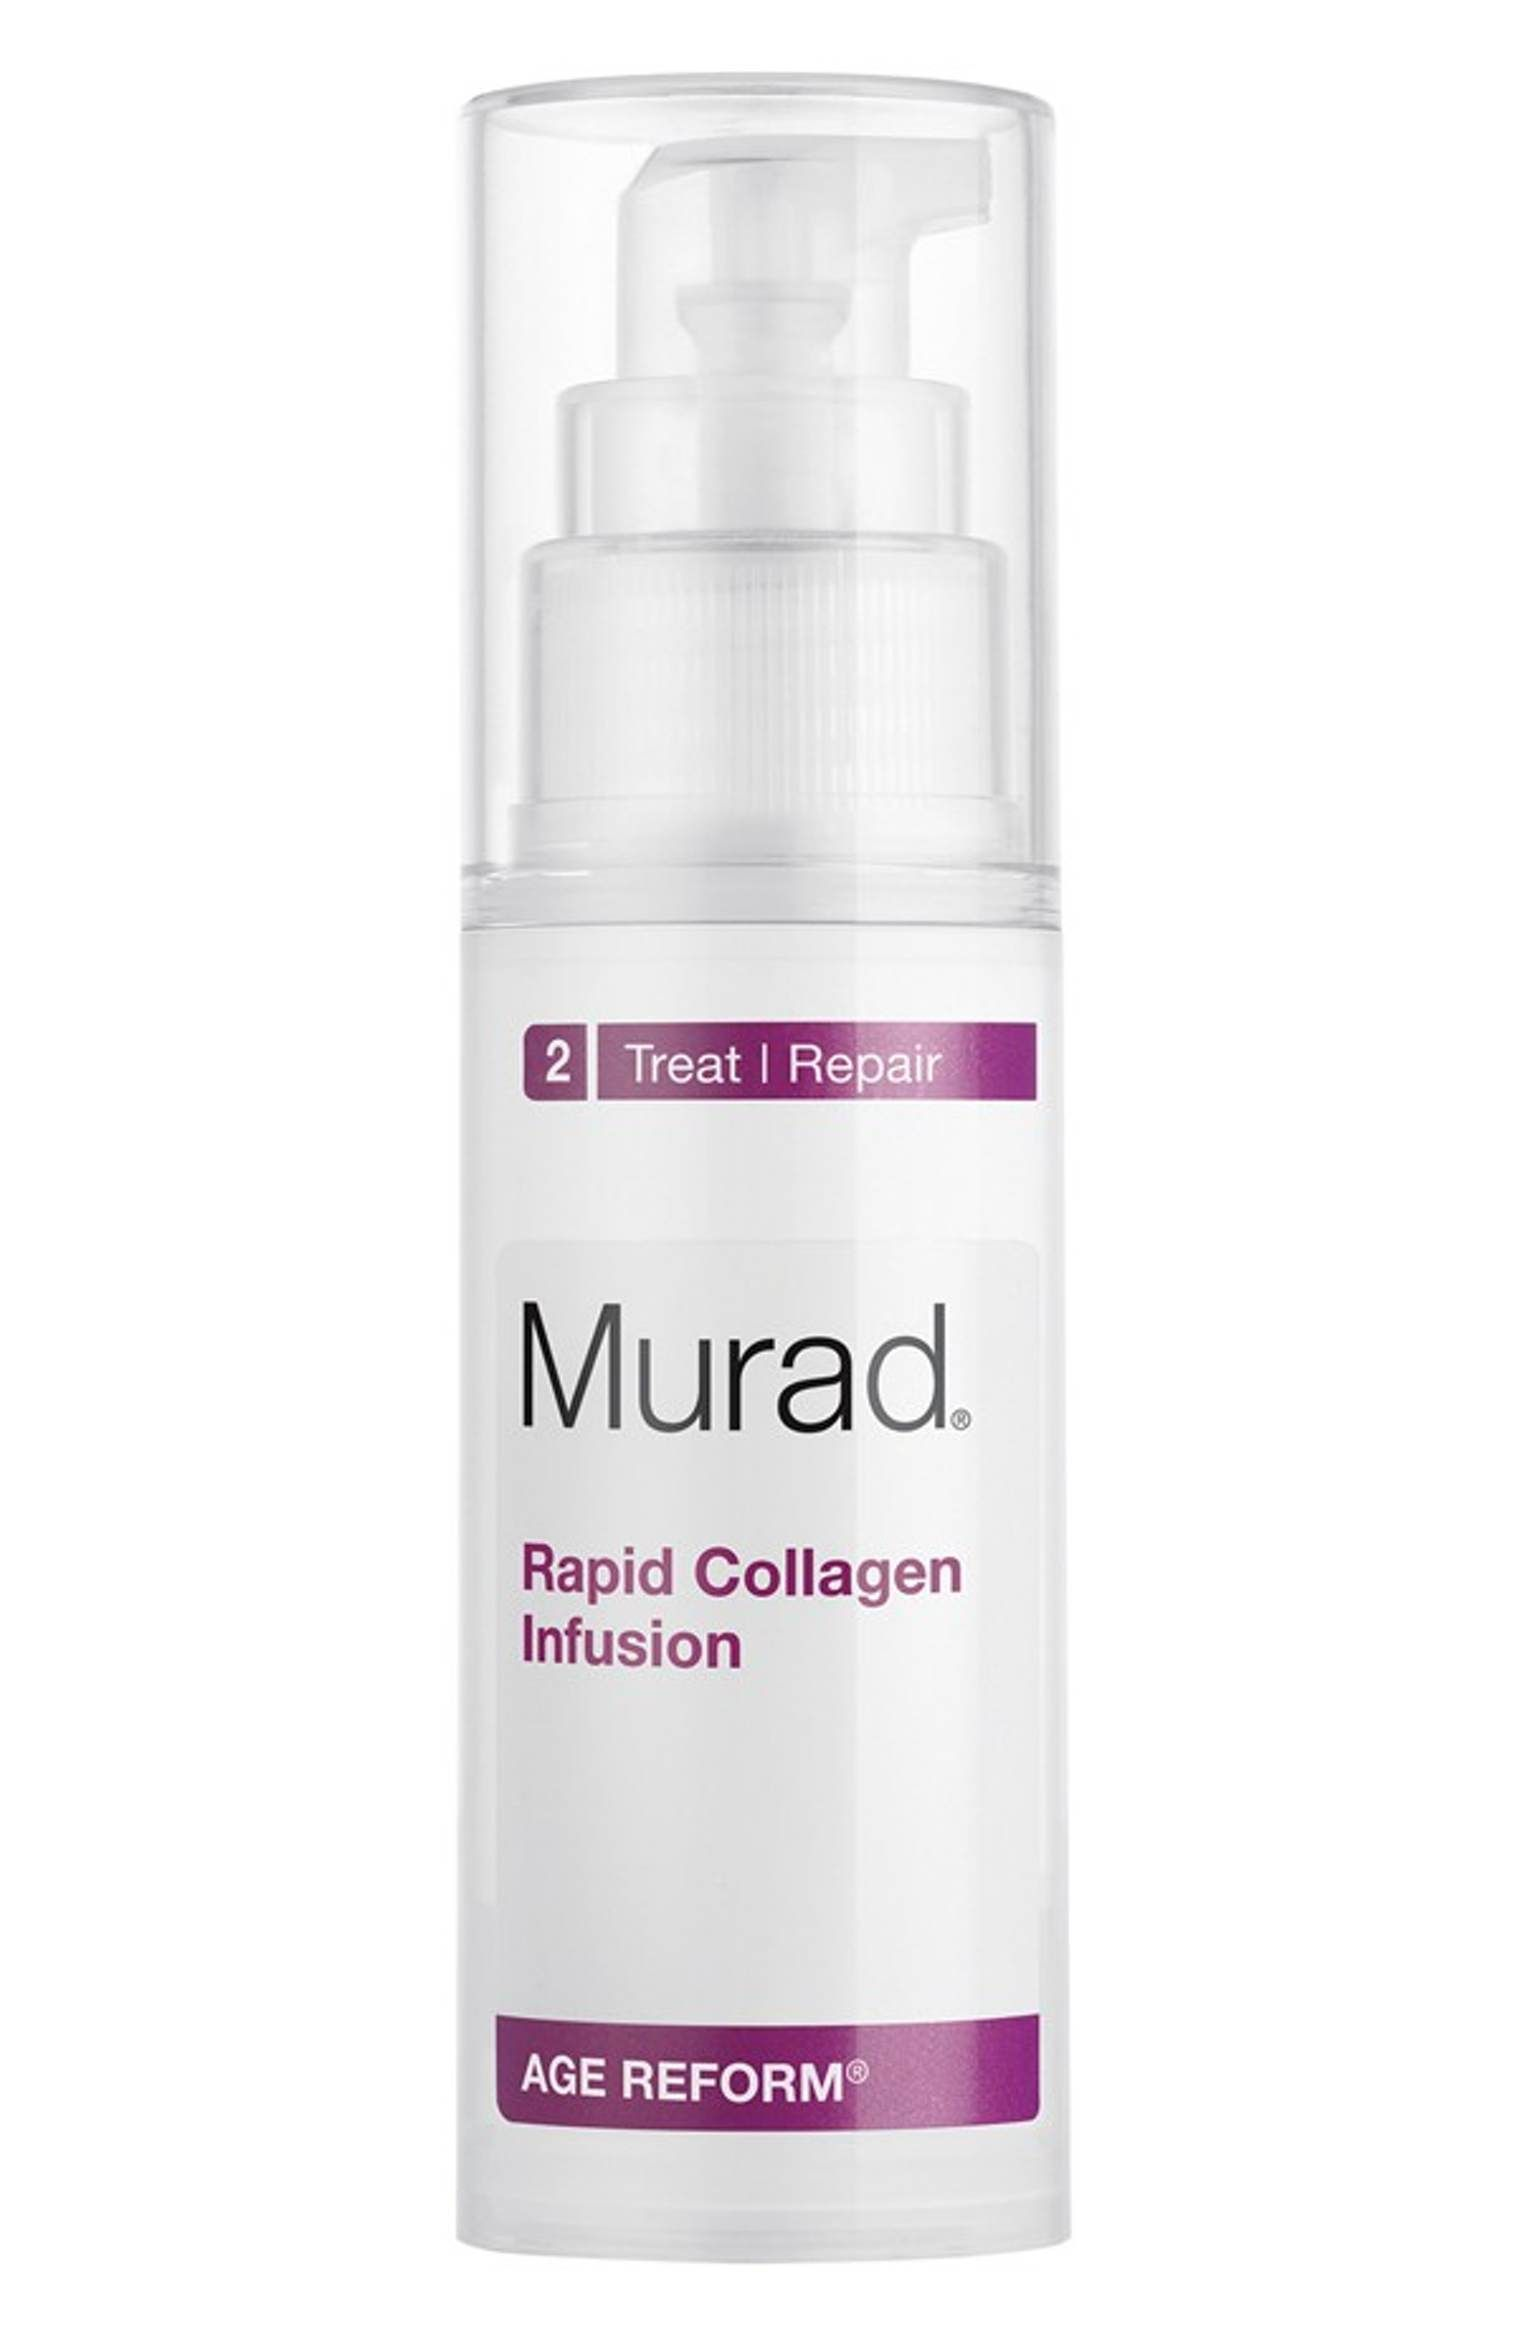 Main Image  Murad Rapid Collagen Infusion